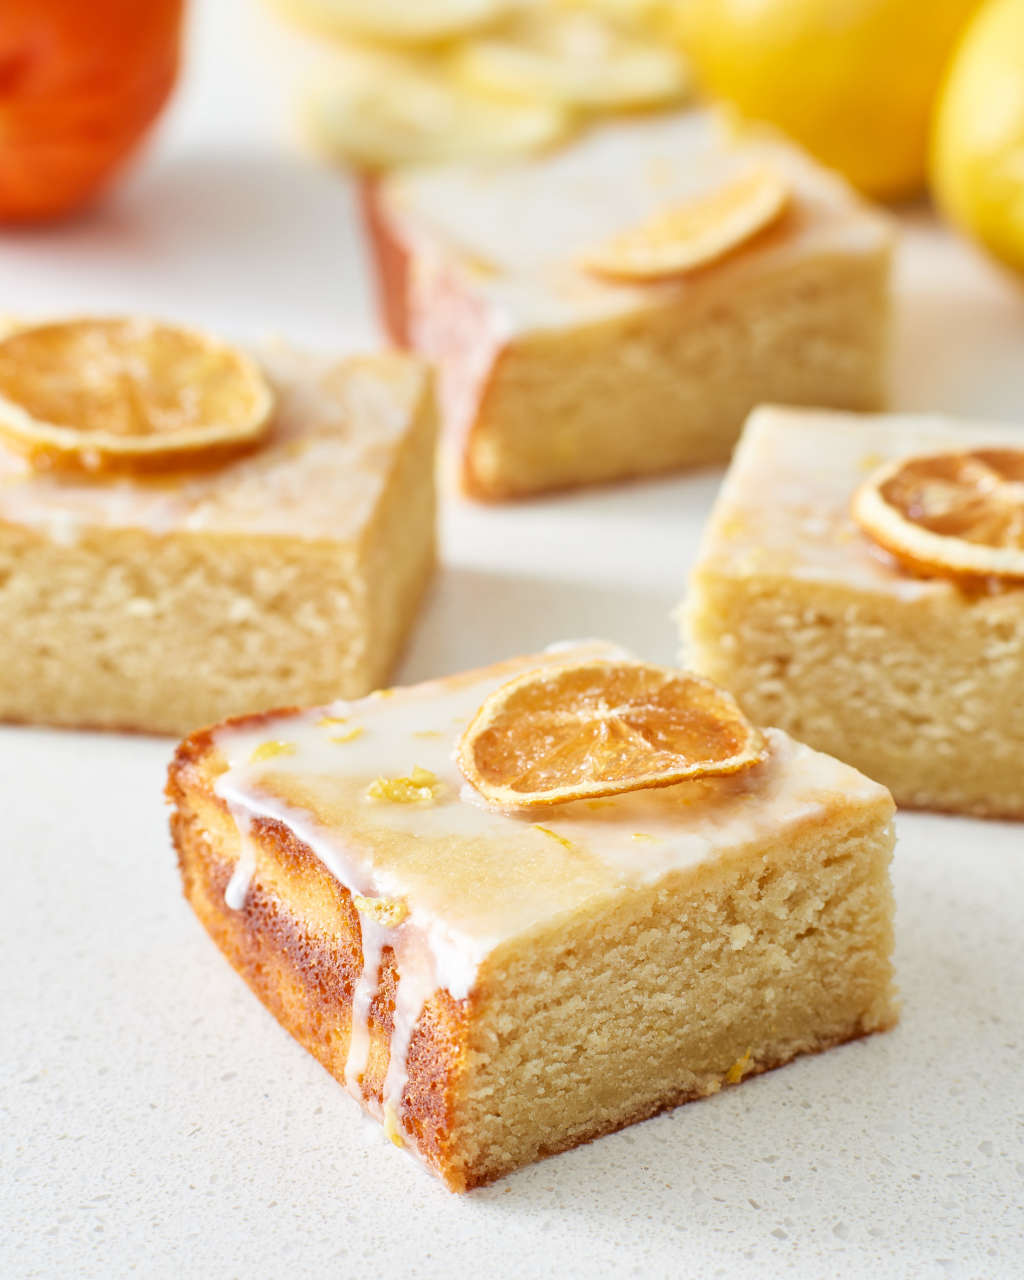 Make Lemon Drizzle Cake Your New Weeknight-Friendly Dessert